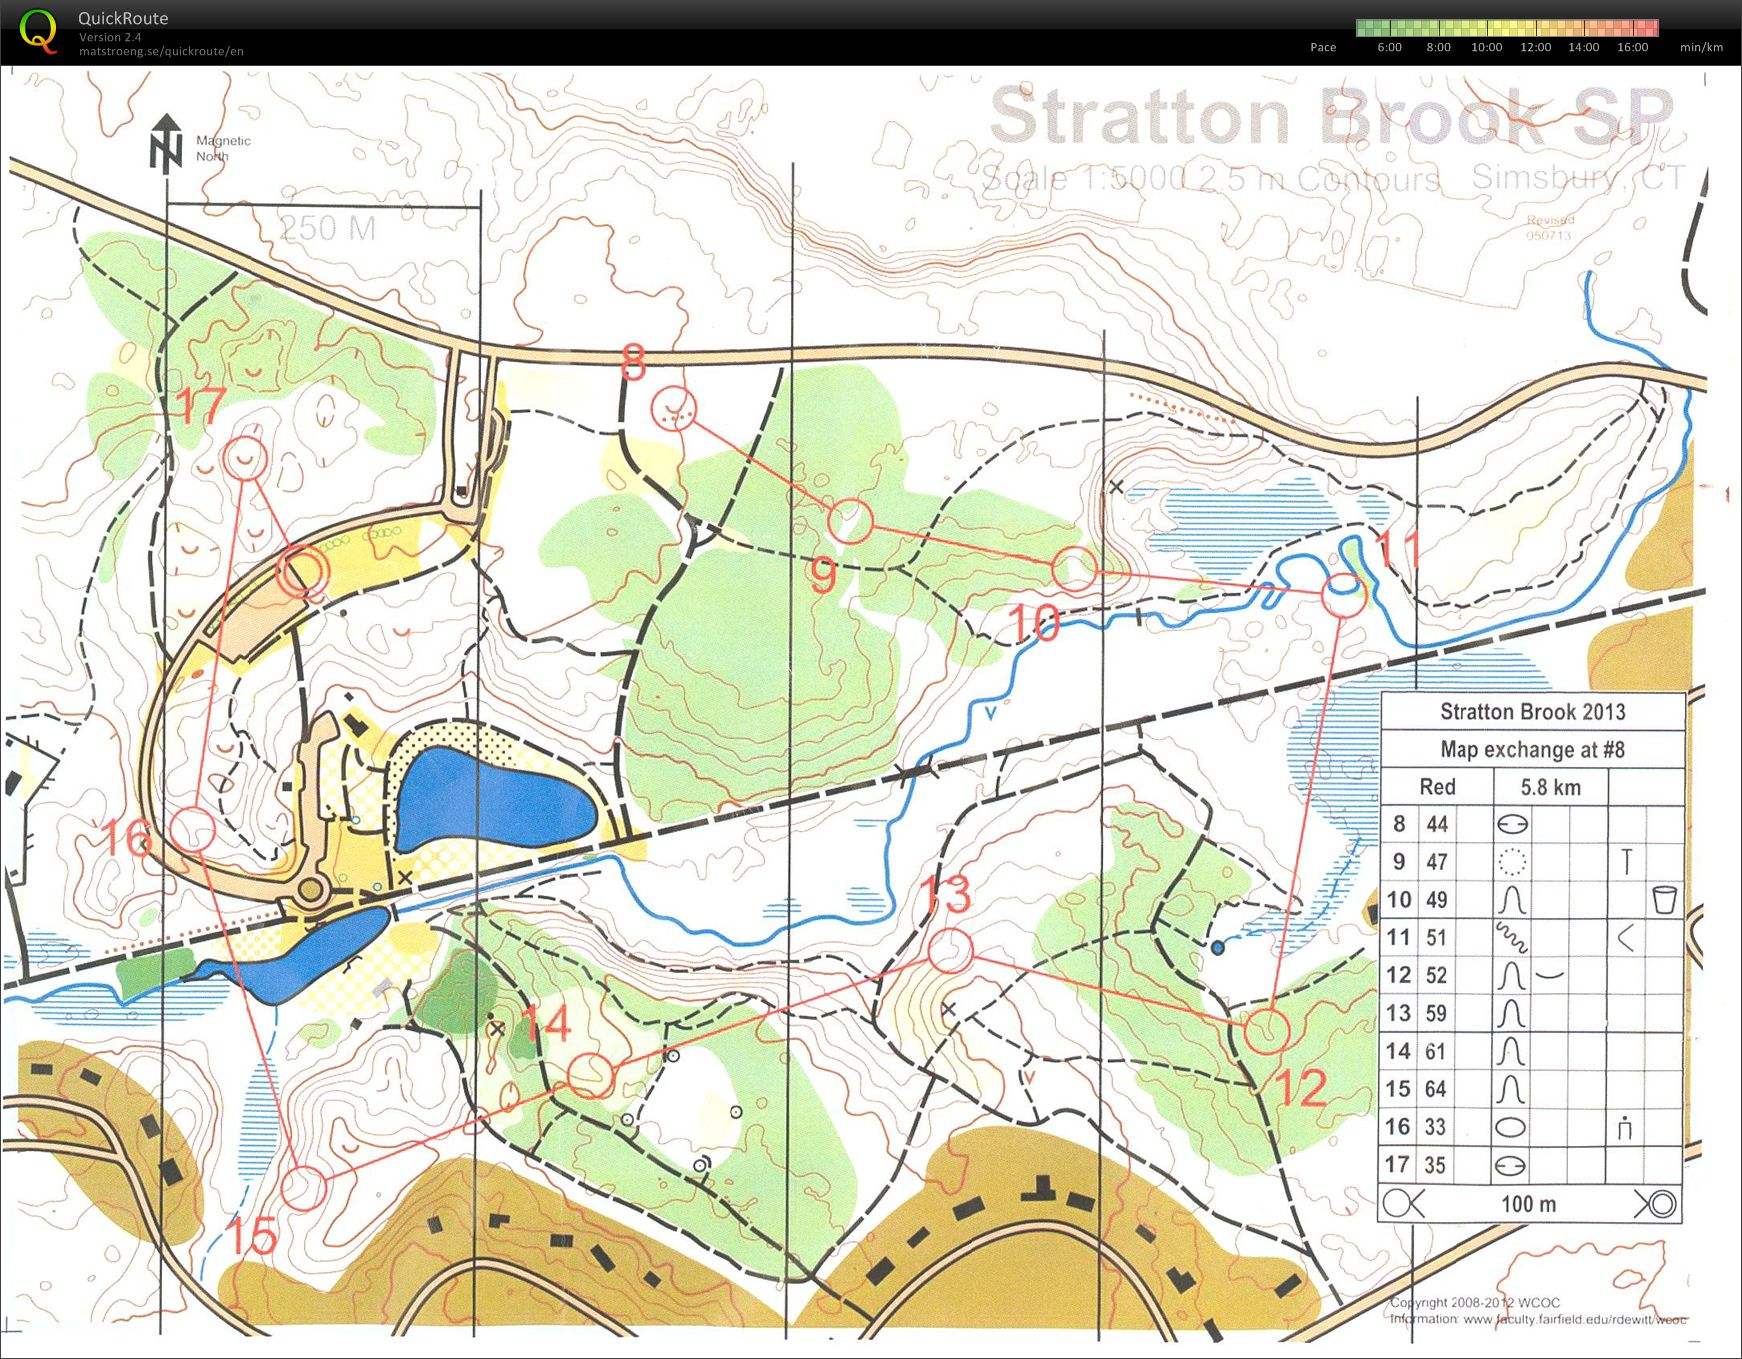 Stratton Brook Red Course, Part 2 (19/05/2013)